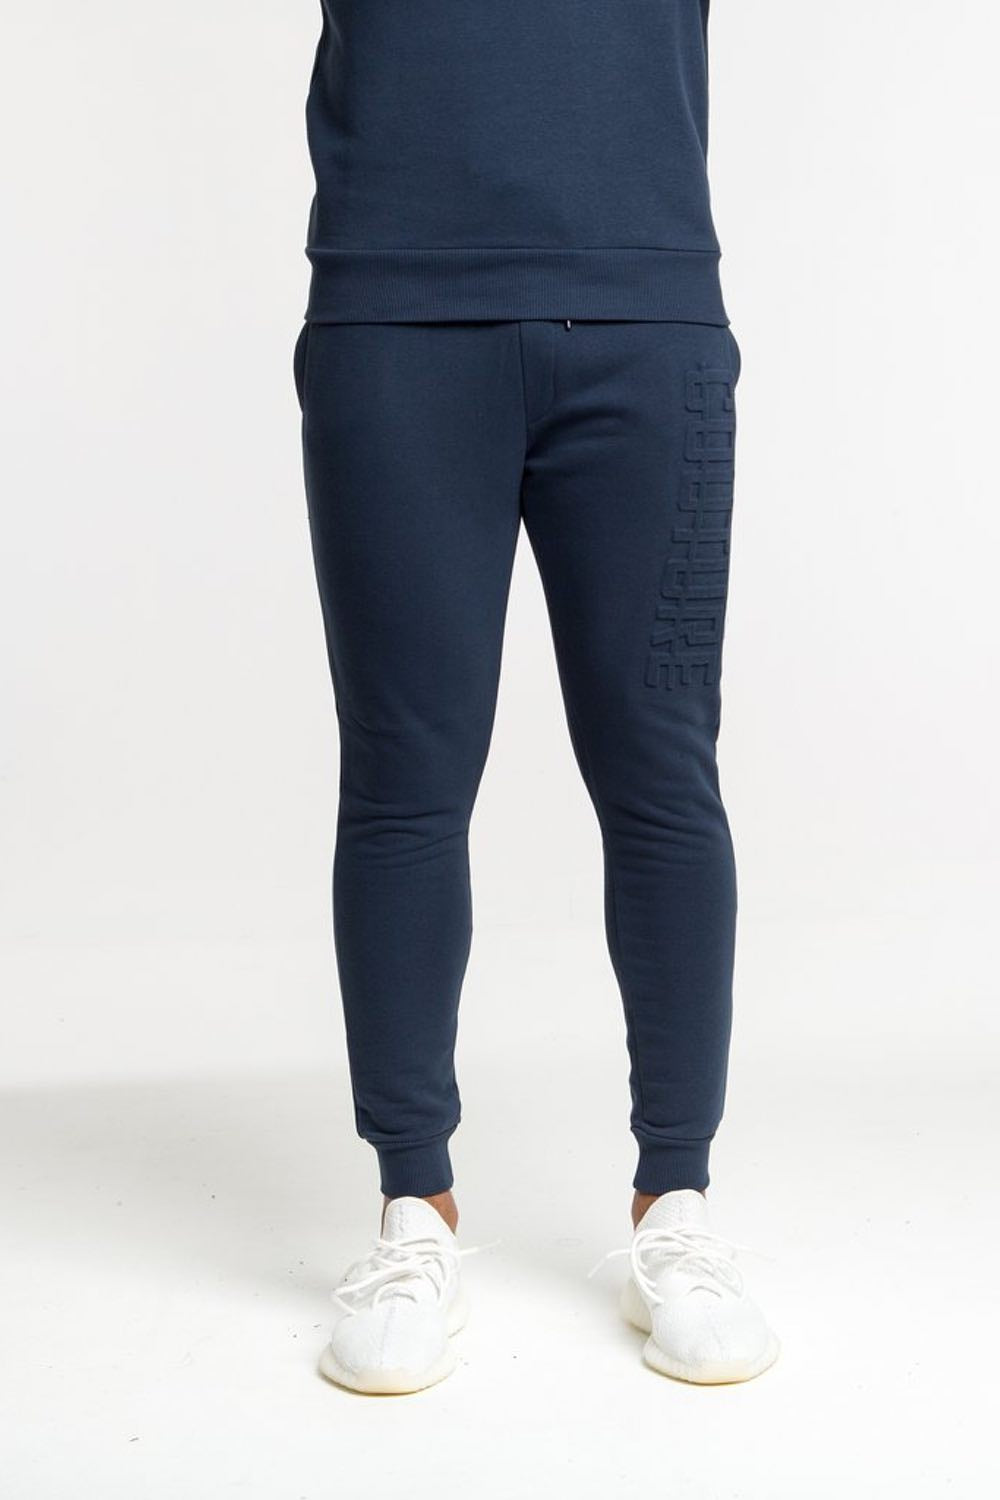 Fresh Couture Monaco Joggers - Navy - 2